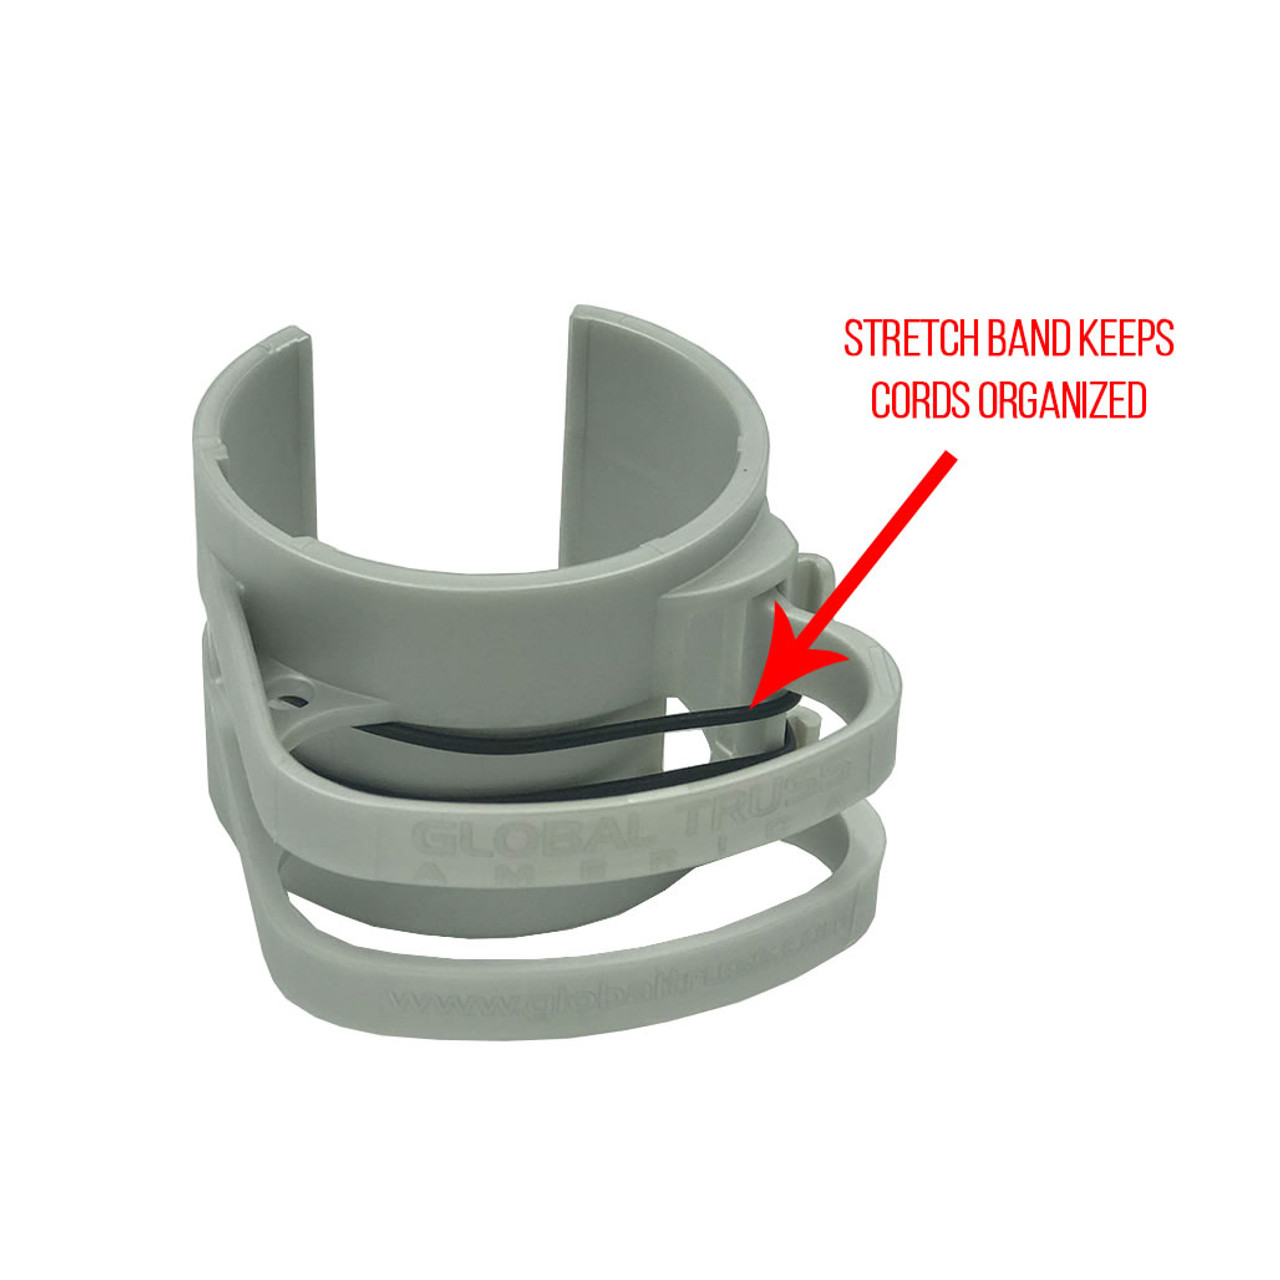 Global Truss DT Snap On Silver Cable Management Clip- Stretch Band Keeps Cords Organized and Contained.